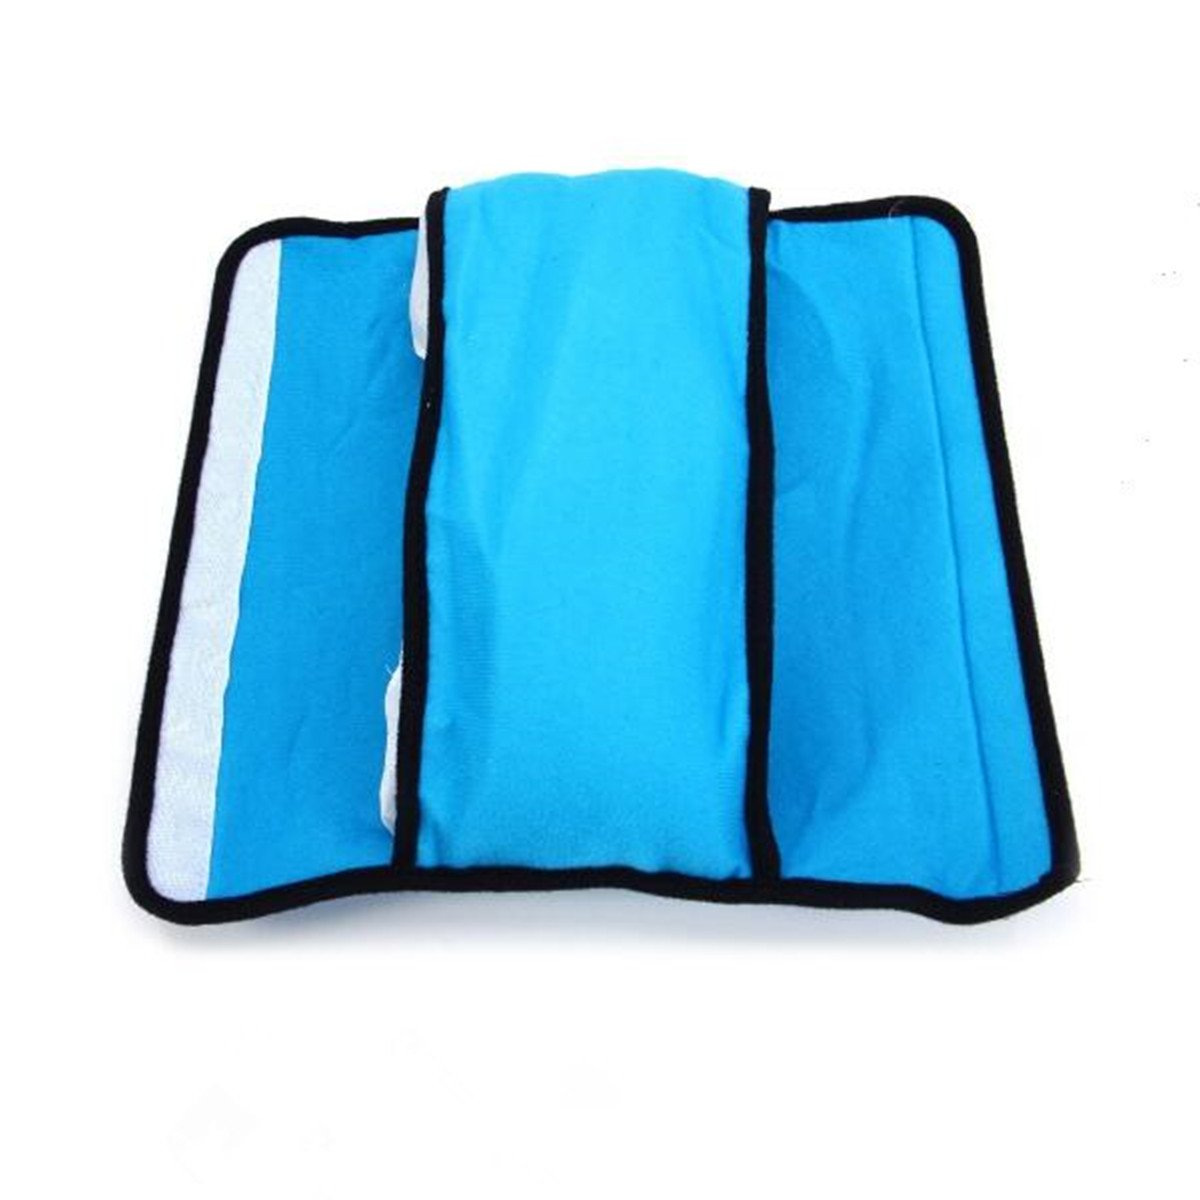 The Wolf Moon Seat Belt Gray Shoulder Pad A Must Have for All Car Owners for a More Comfortable Driving (blue)